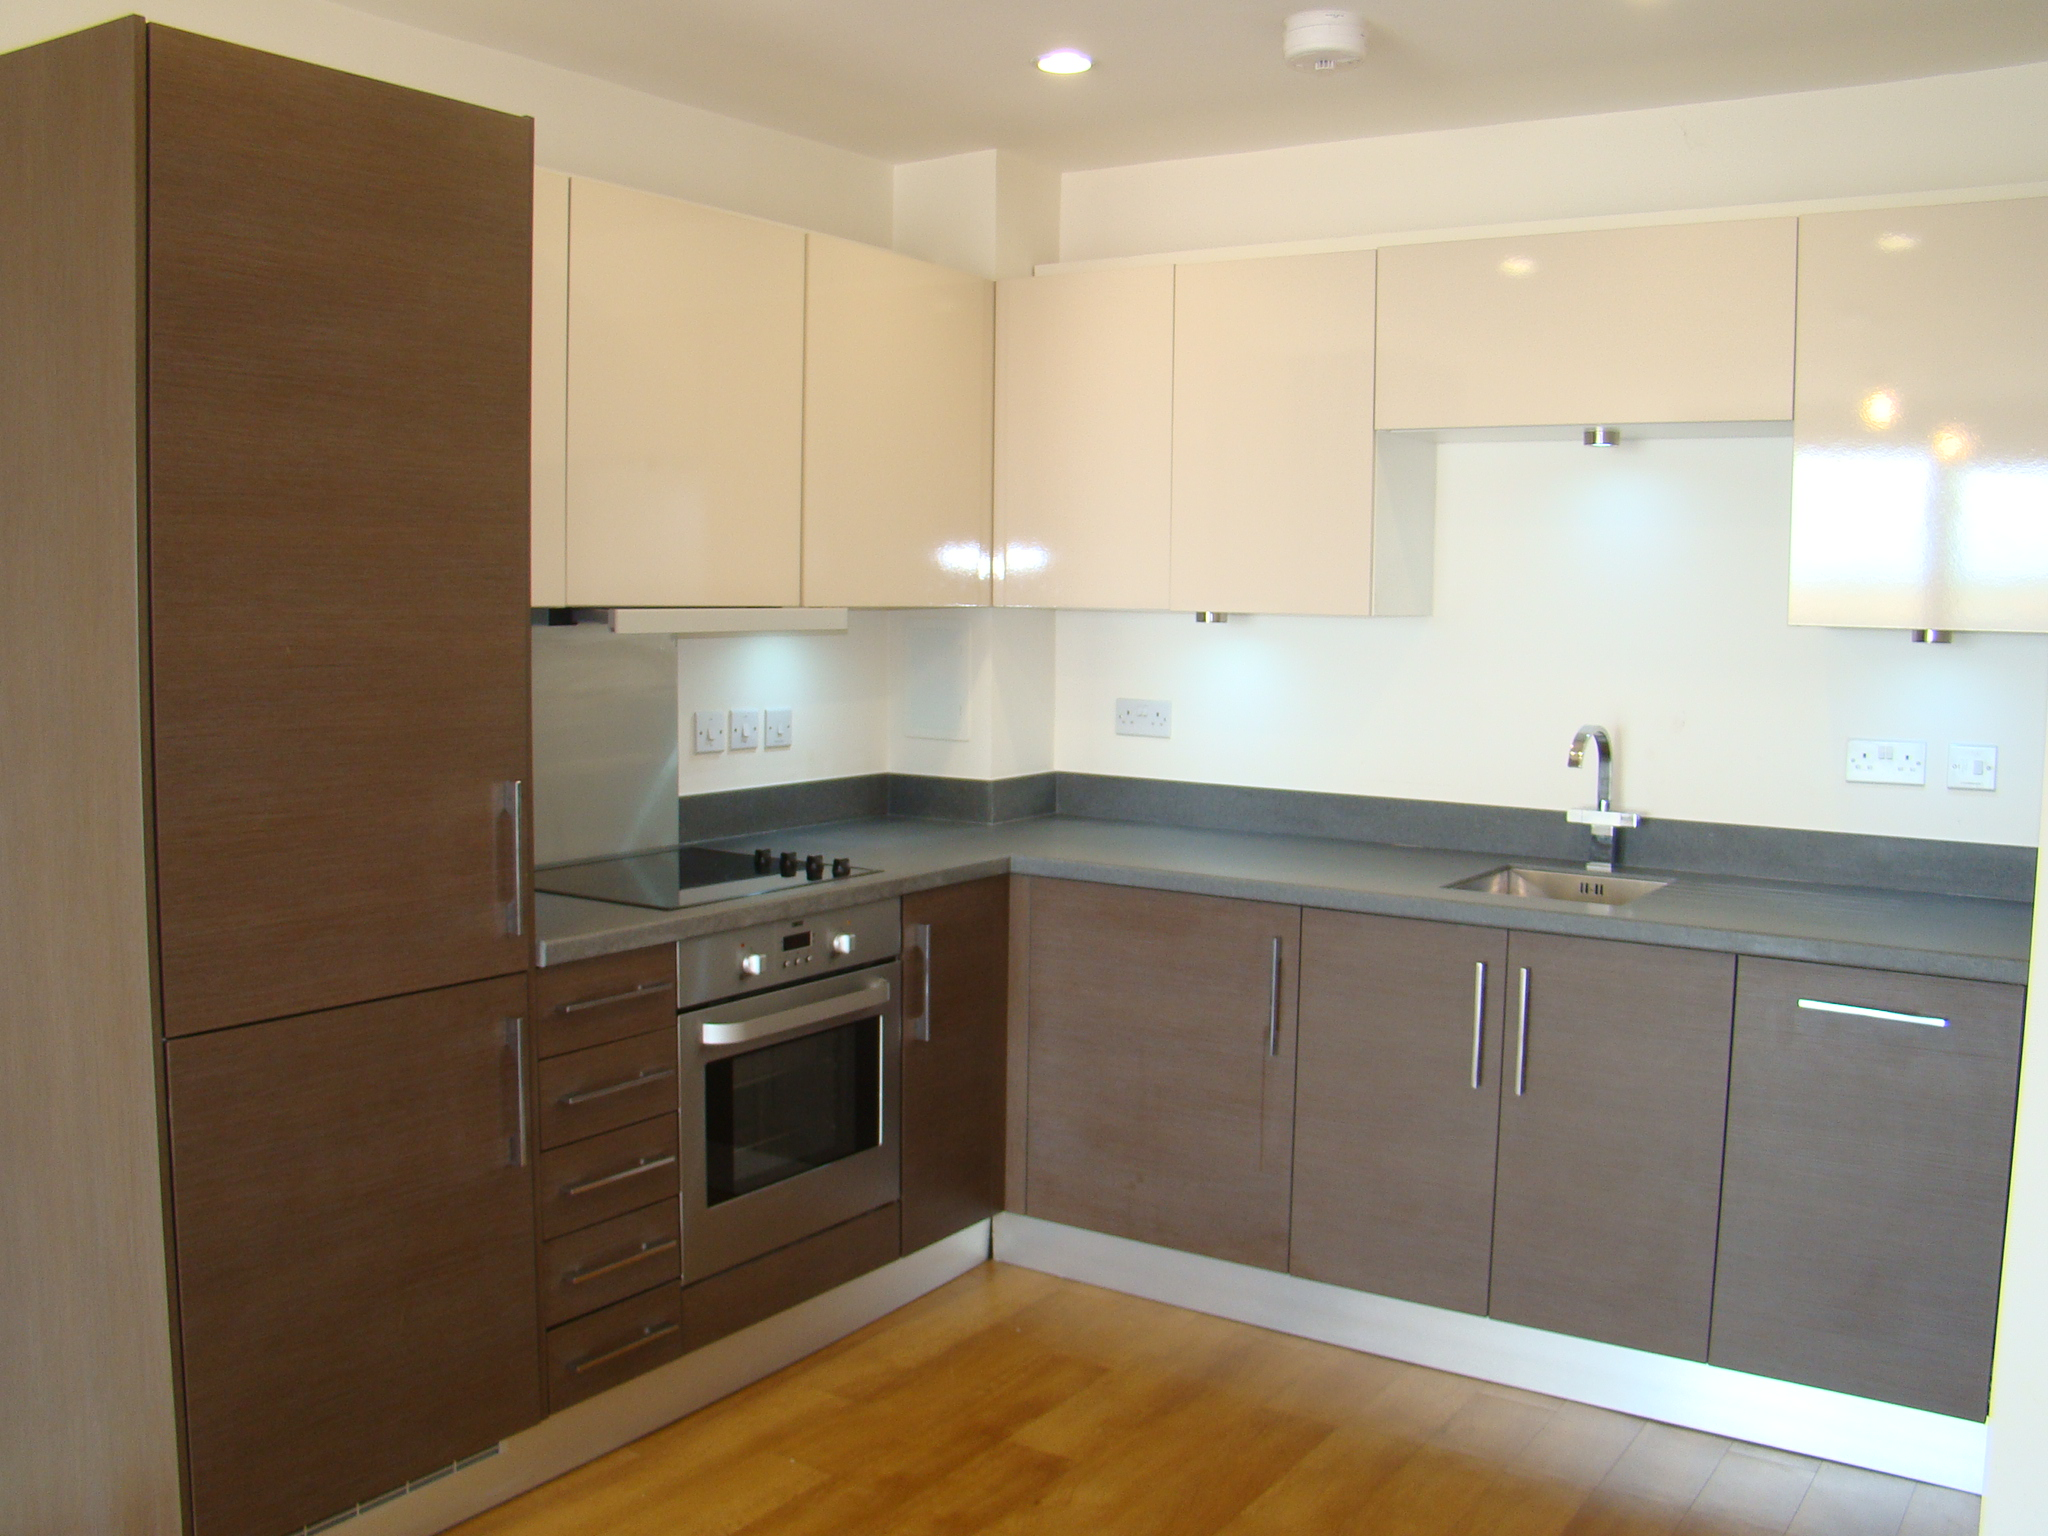 1 bed flat to rent in The Boathouse Ocean Drive, Gillingham, ME7